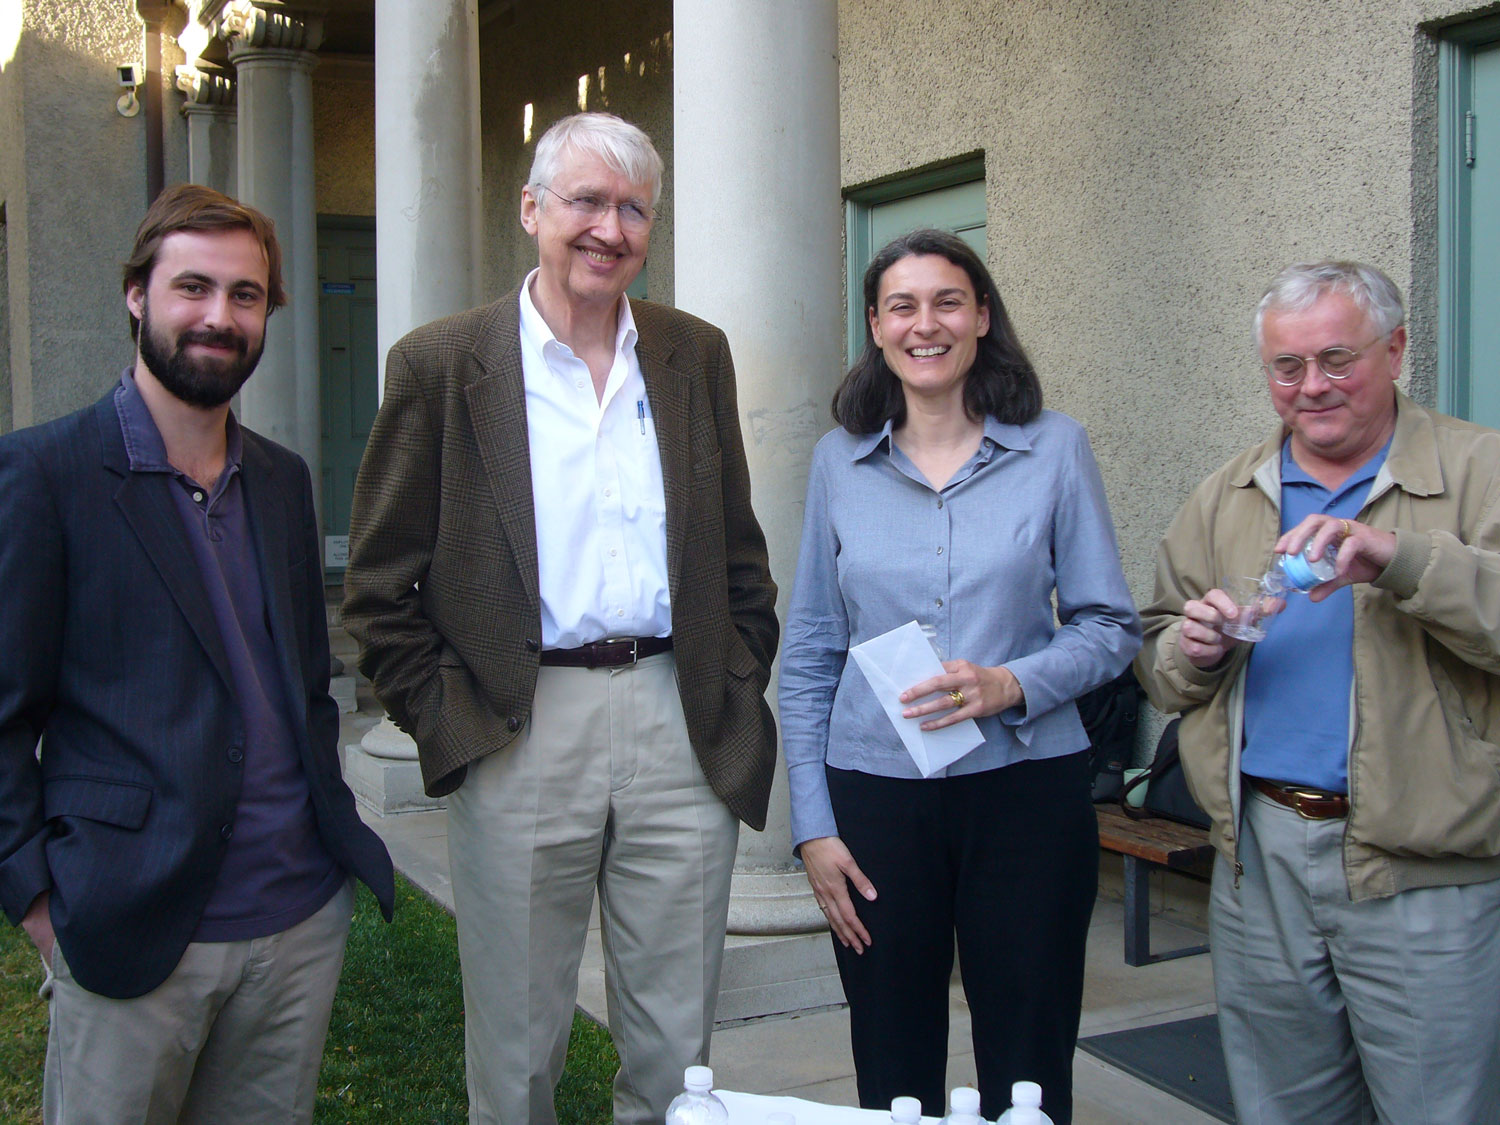 Jordan Gadd (09), Judson Emerick, Julie Nicoletta ('87) and George Gorse gather after Julie's talk on April 7, 2009